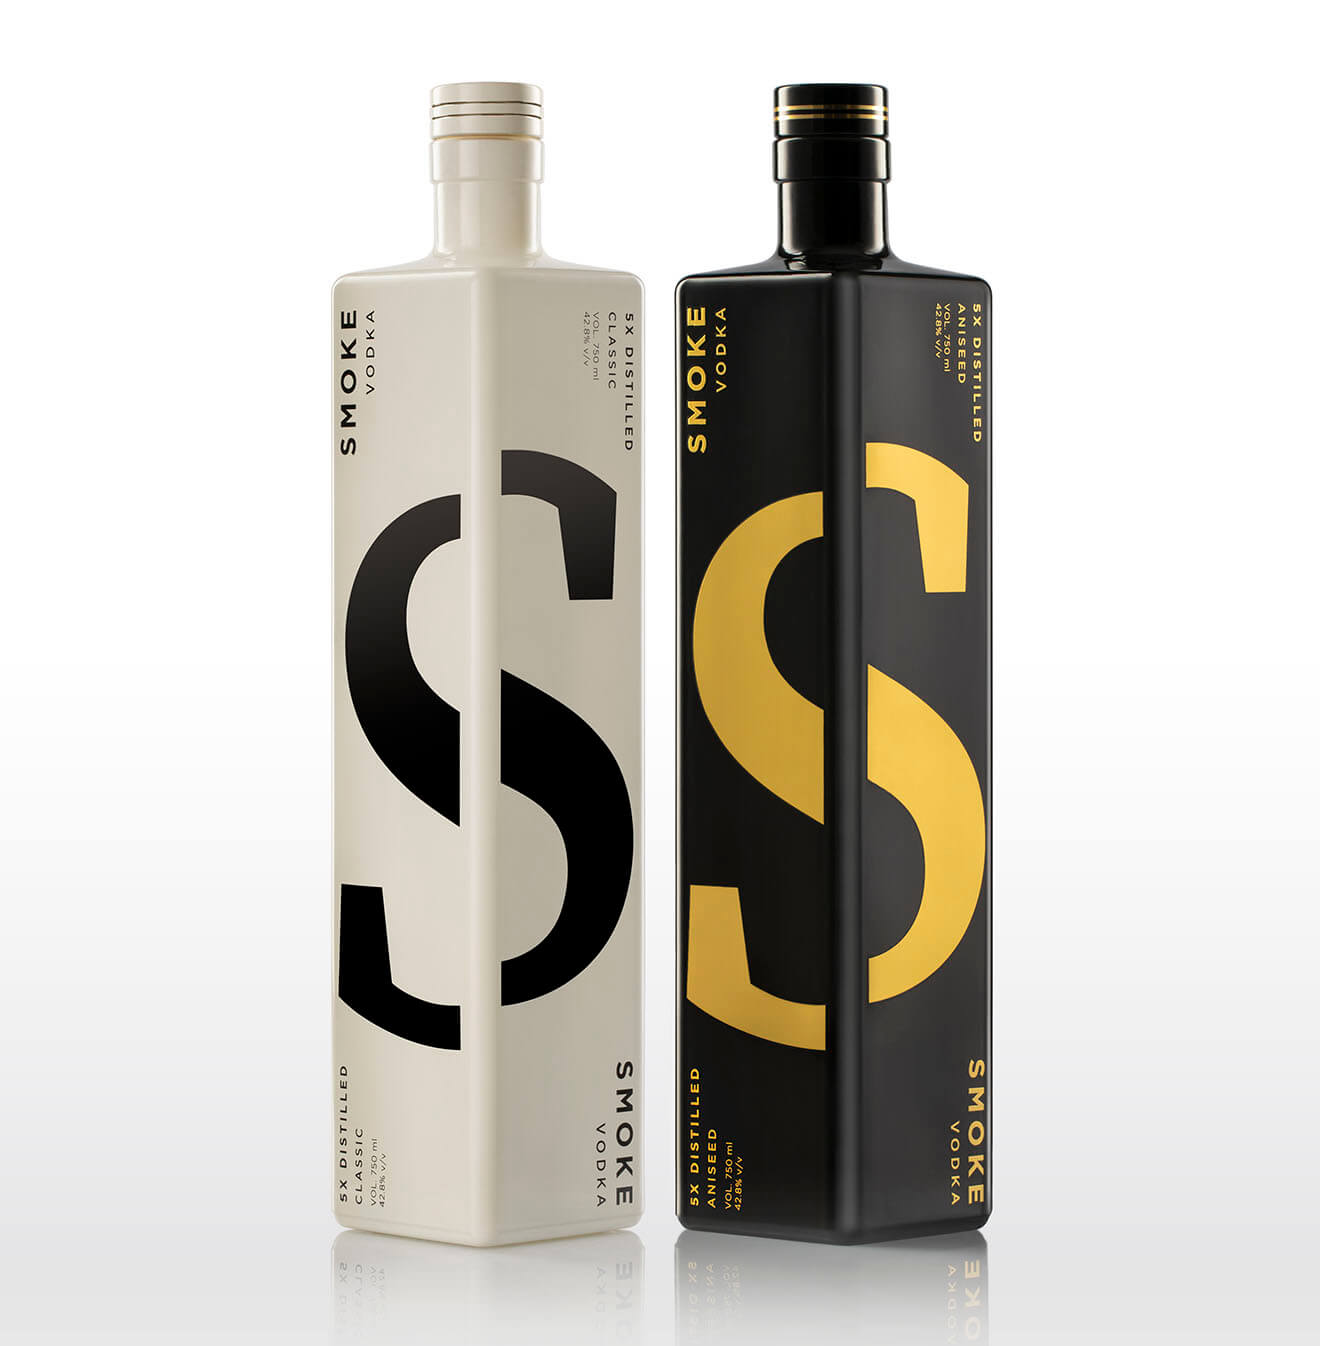 Smoke Lab Vodka Classic and Aniseed, bottles on white